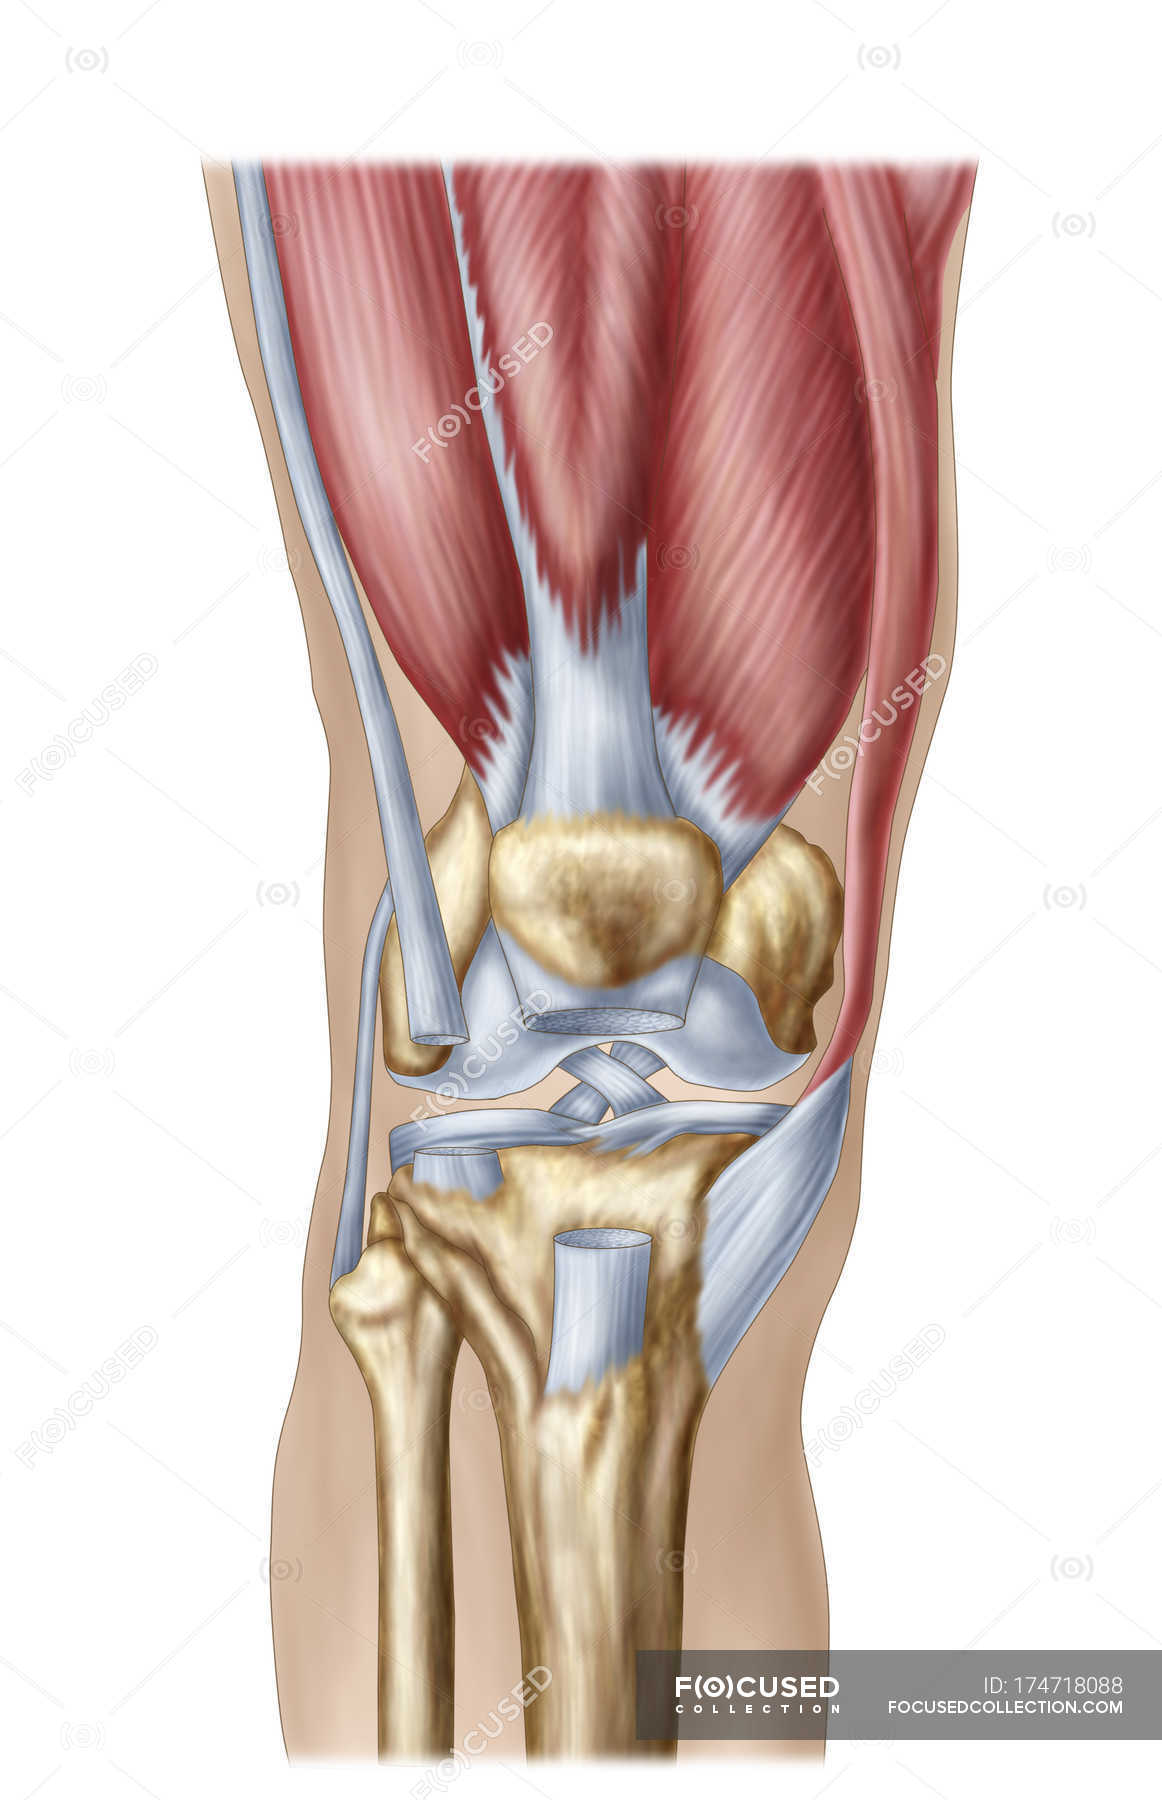 Anatomy Of Human Knee Joint On White Background Stock Photo